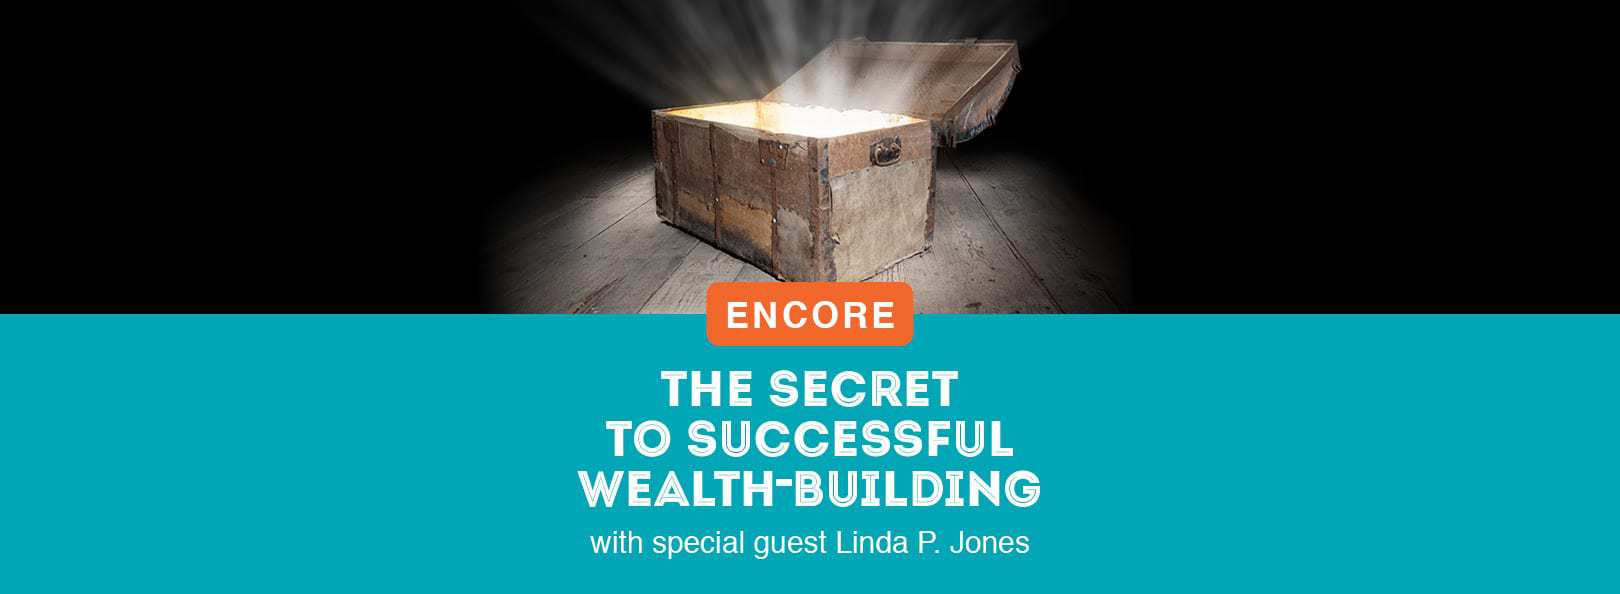 ENCORE: The Secret to Successful Wealth-Building with special guest Linda P. Jones